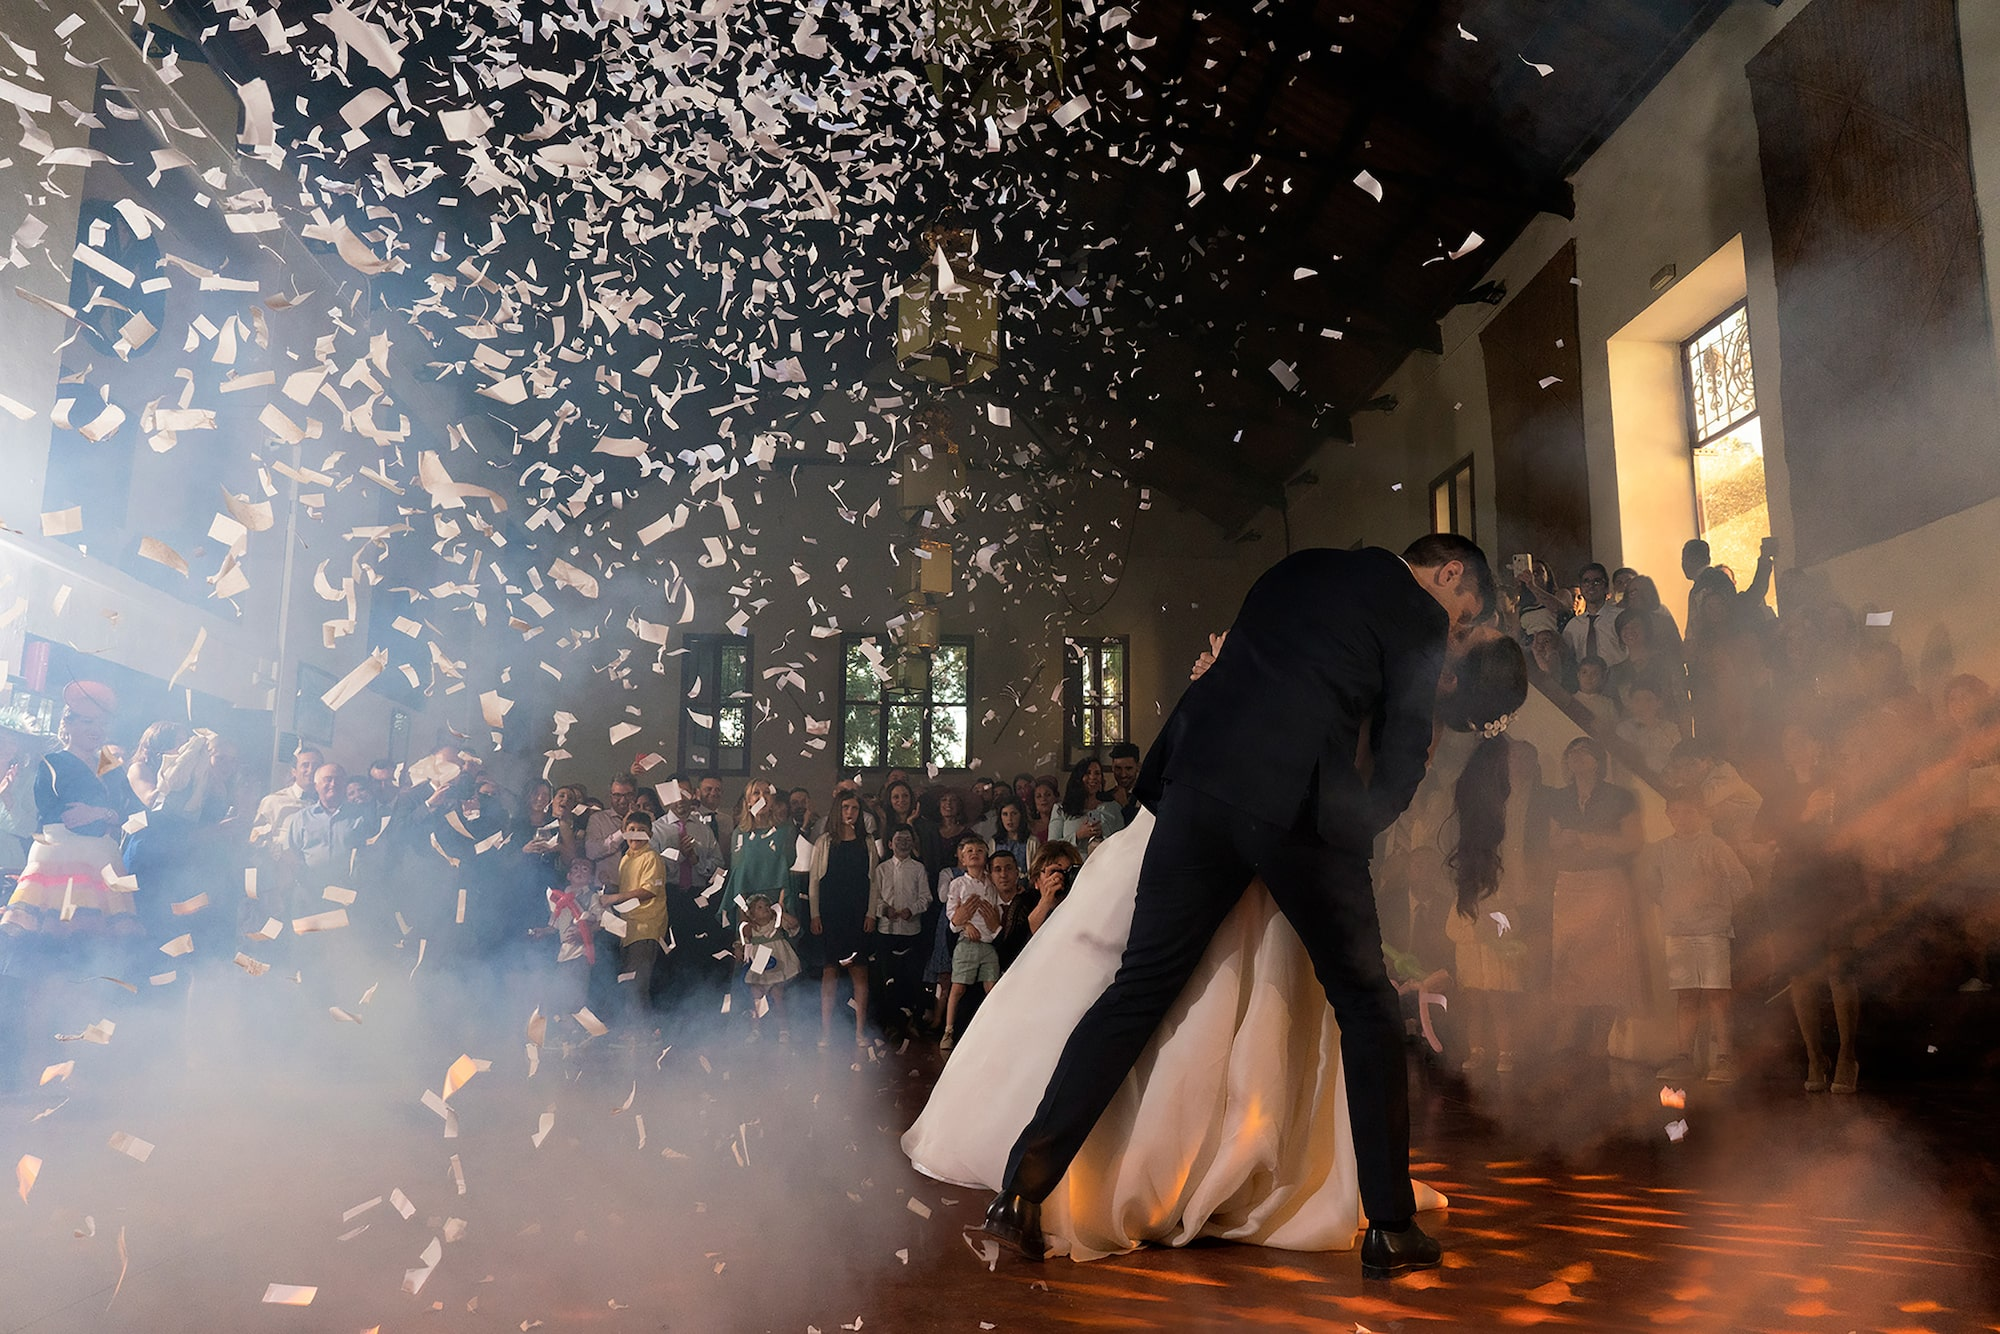 jorge miguel jaime baez sony alpha 7RIII bride and groom kissing on the dance floor as confetti swirls around them